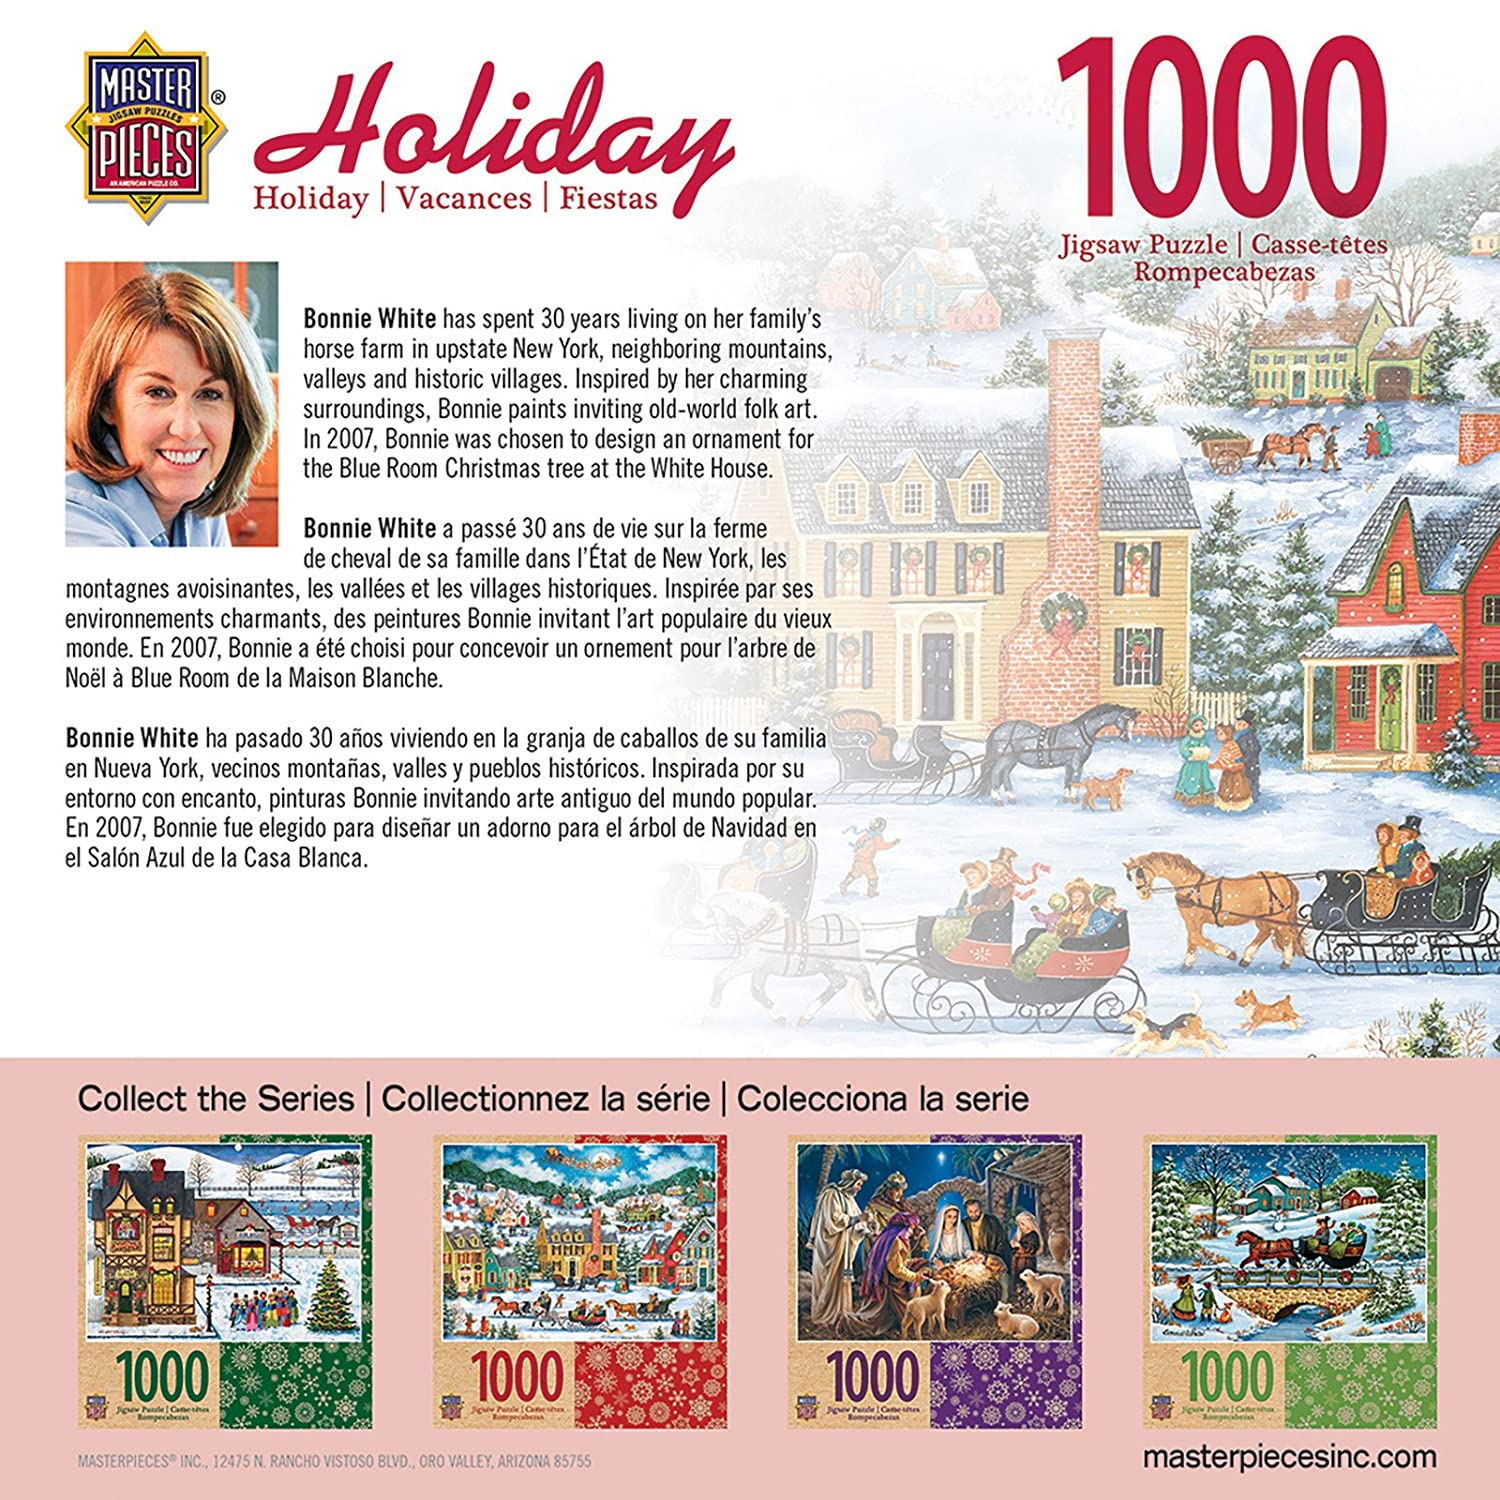 Amazon.com: MasterPieces Holiday Christmas Eve Fly by 1000 Piece Puzzle: Toys & Games